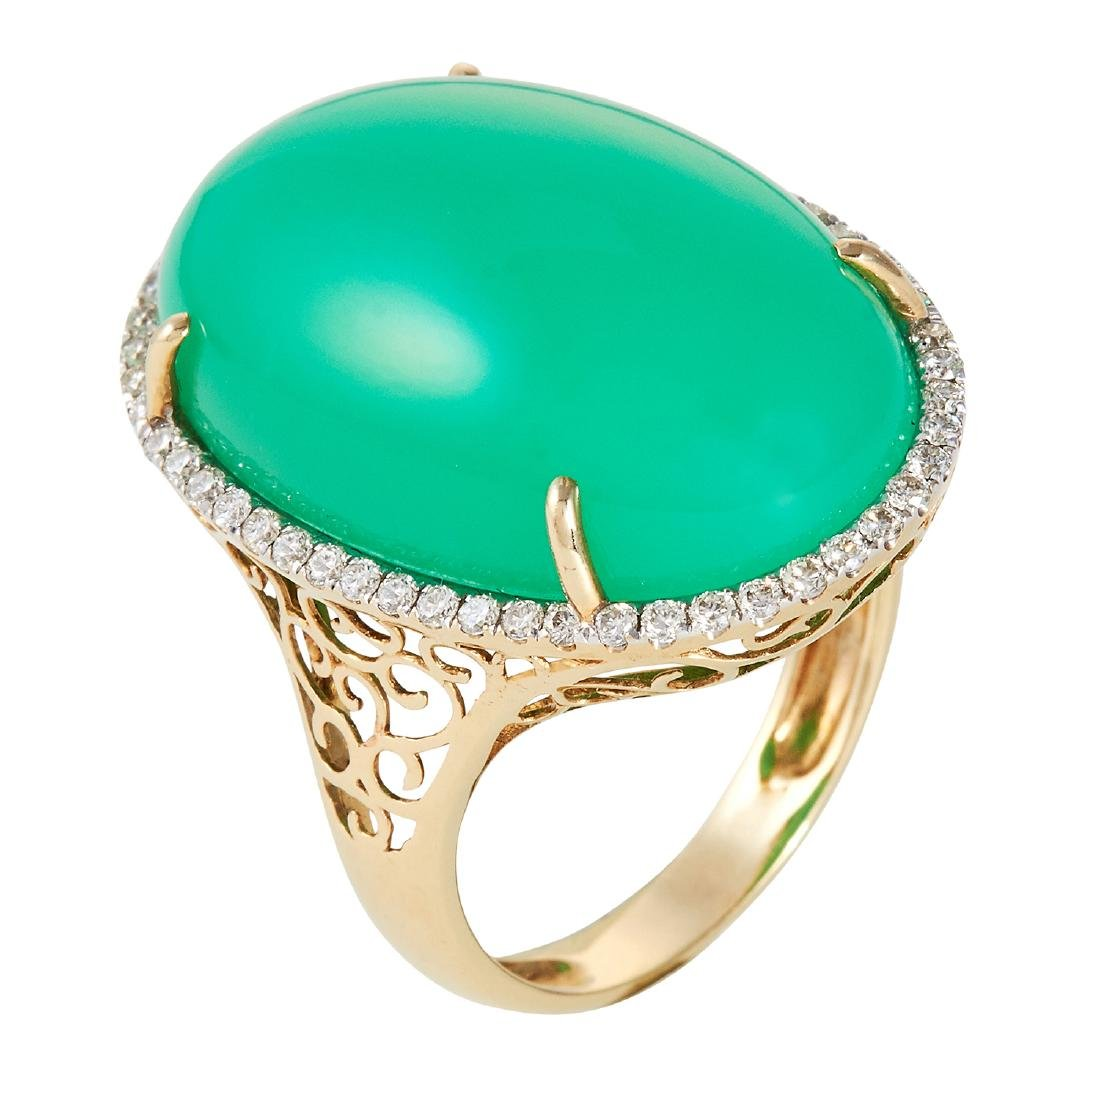 A CHALCEDONY AND DIAMOND DRESS RING in 14ct yellow